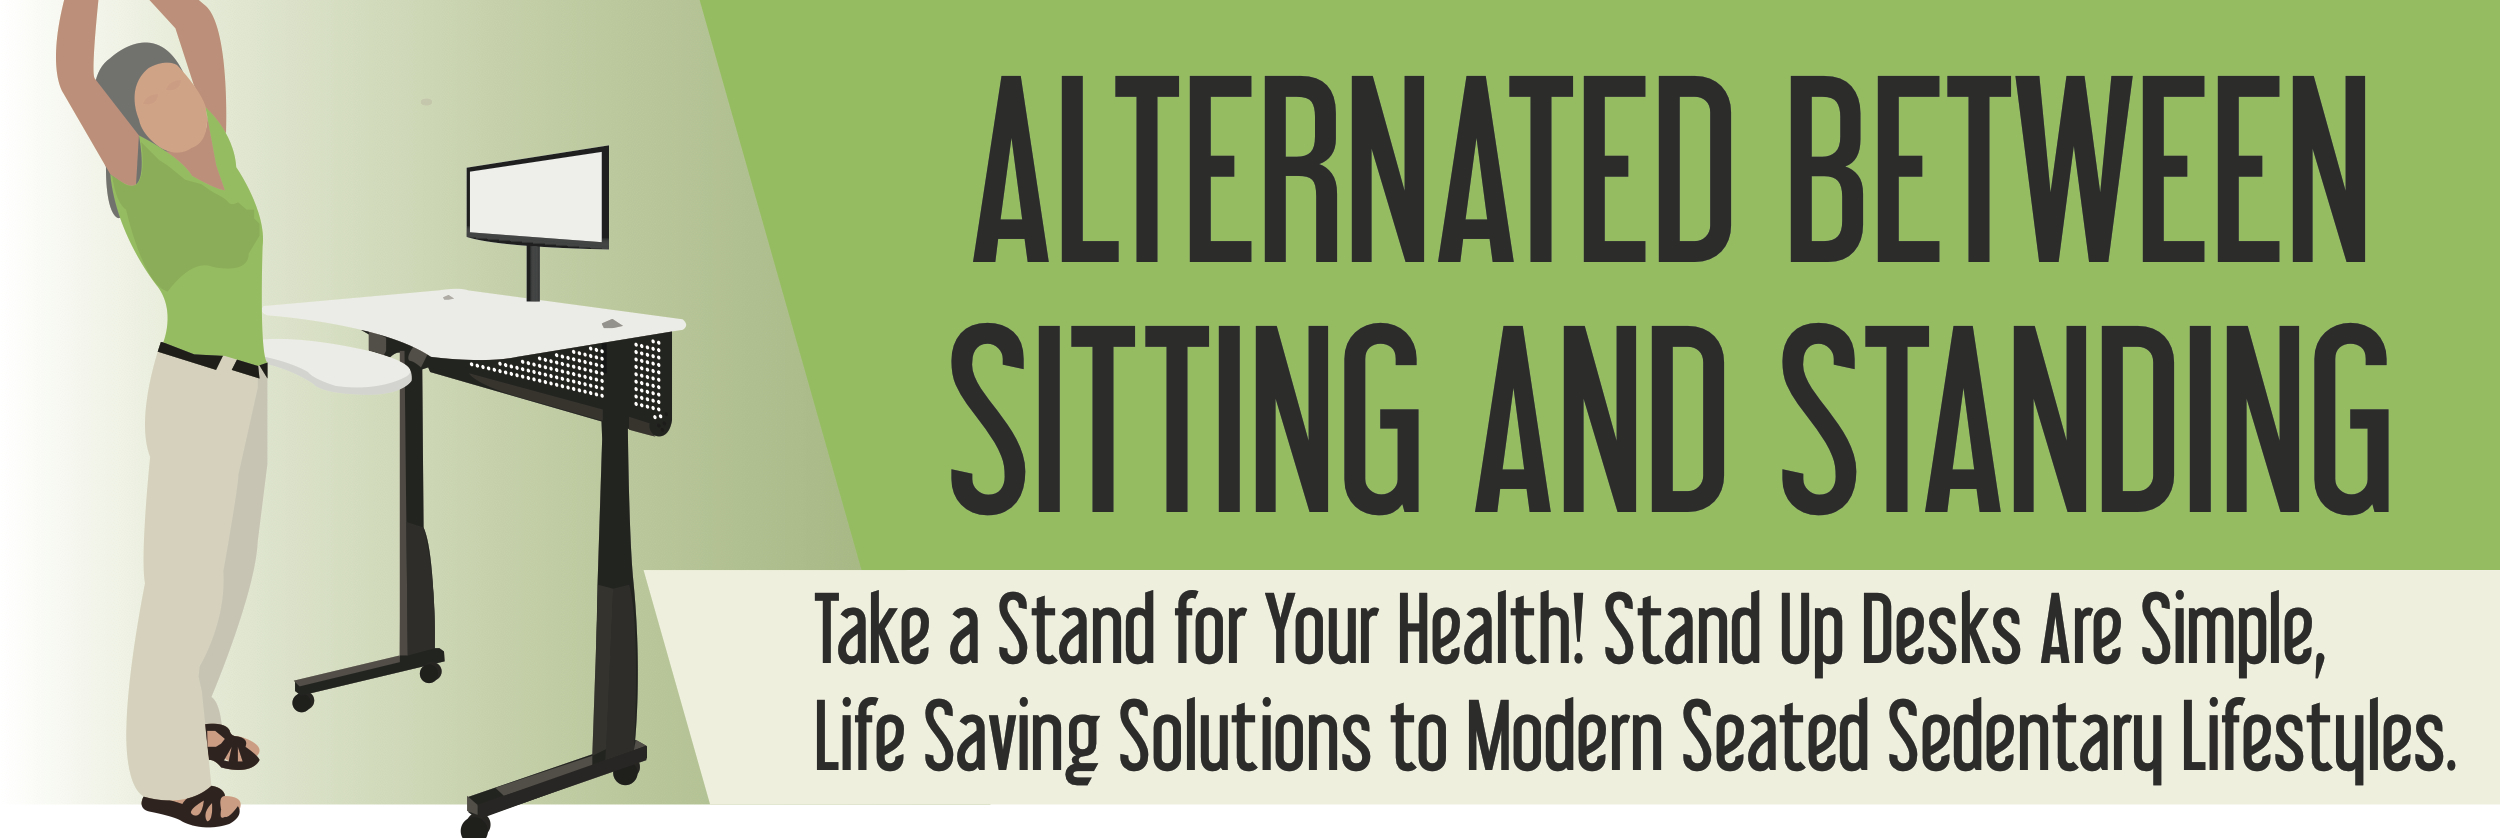 alternate-between-sitting-and-standing-at-a-height-adjustable-table-desk.jpg